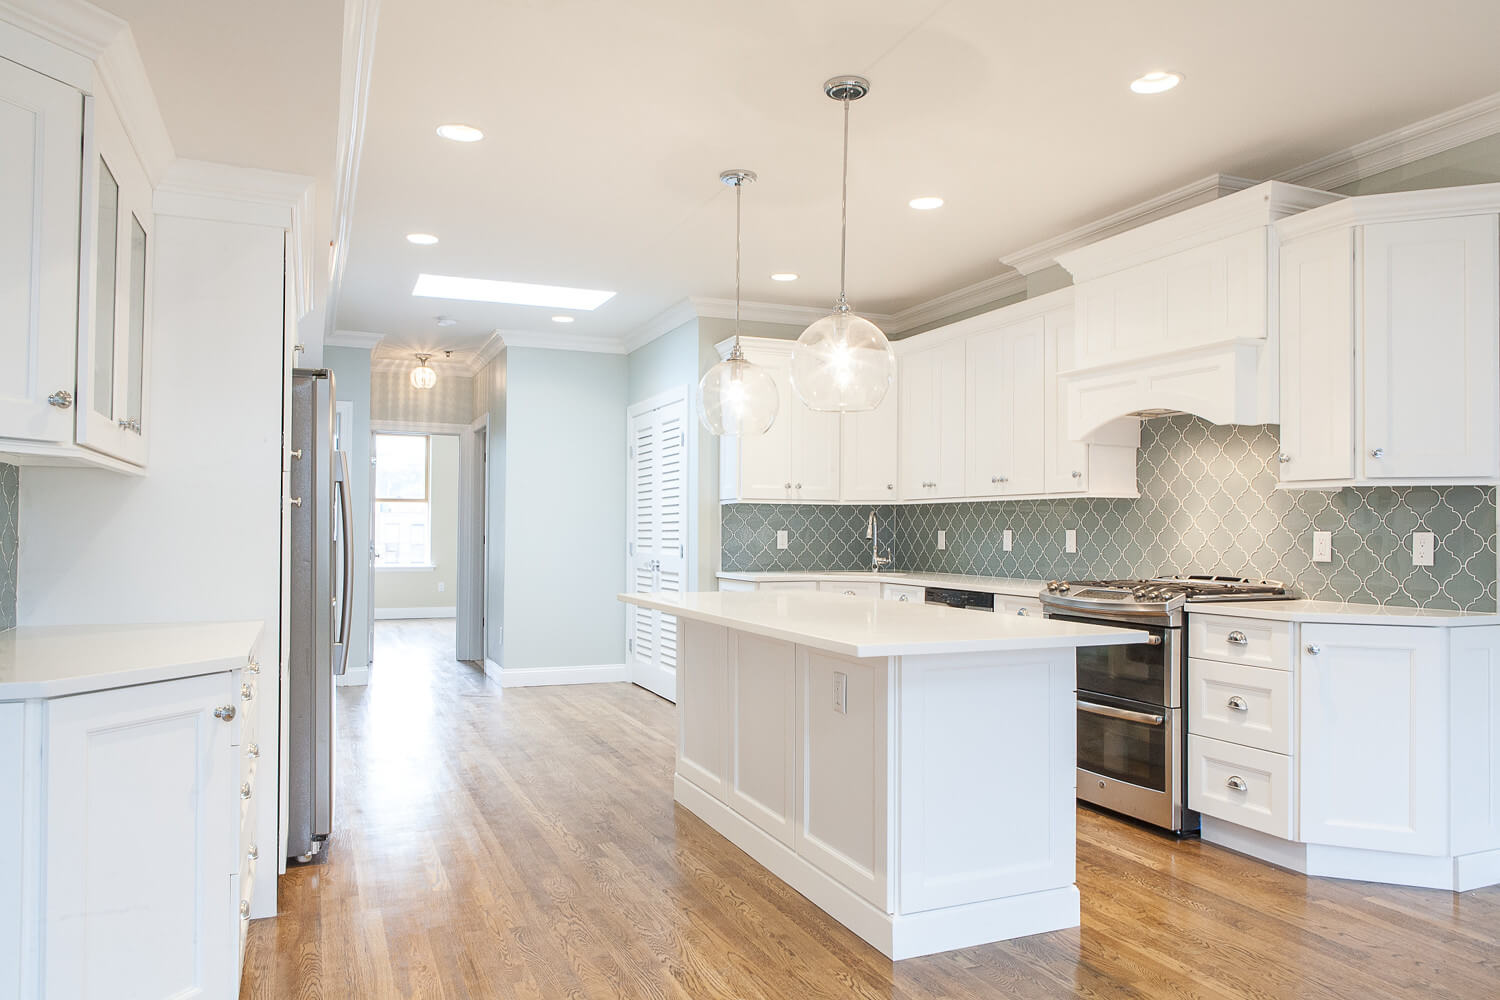 Image of completed Hoboken, NJ remodel